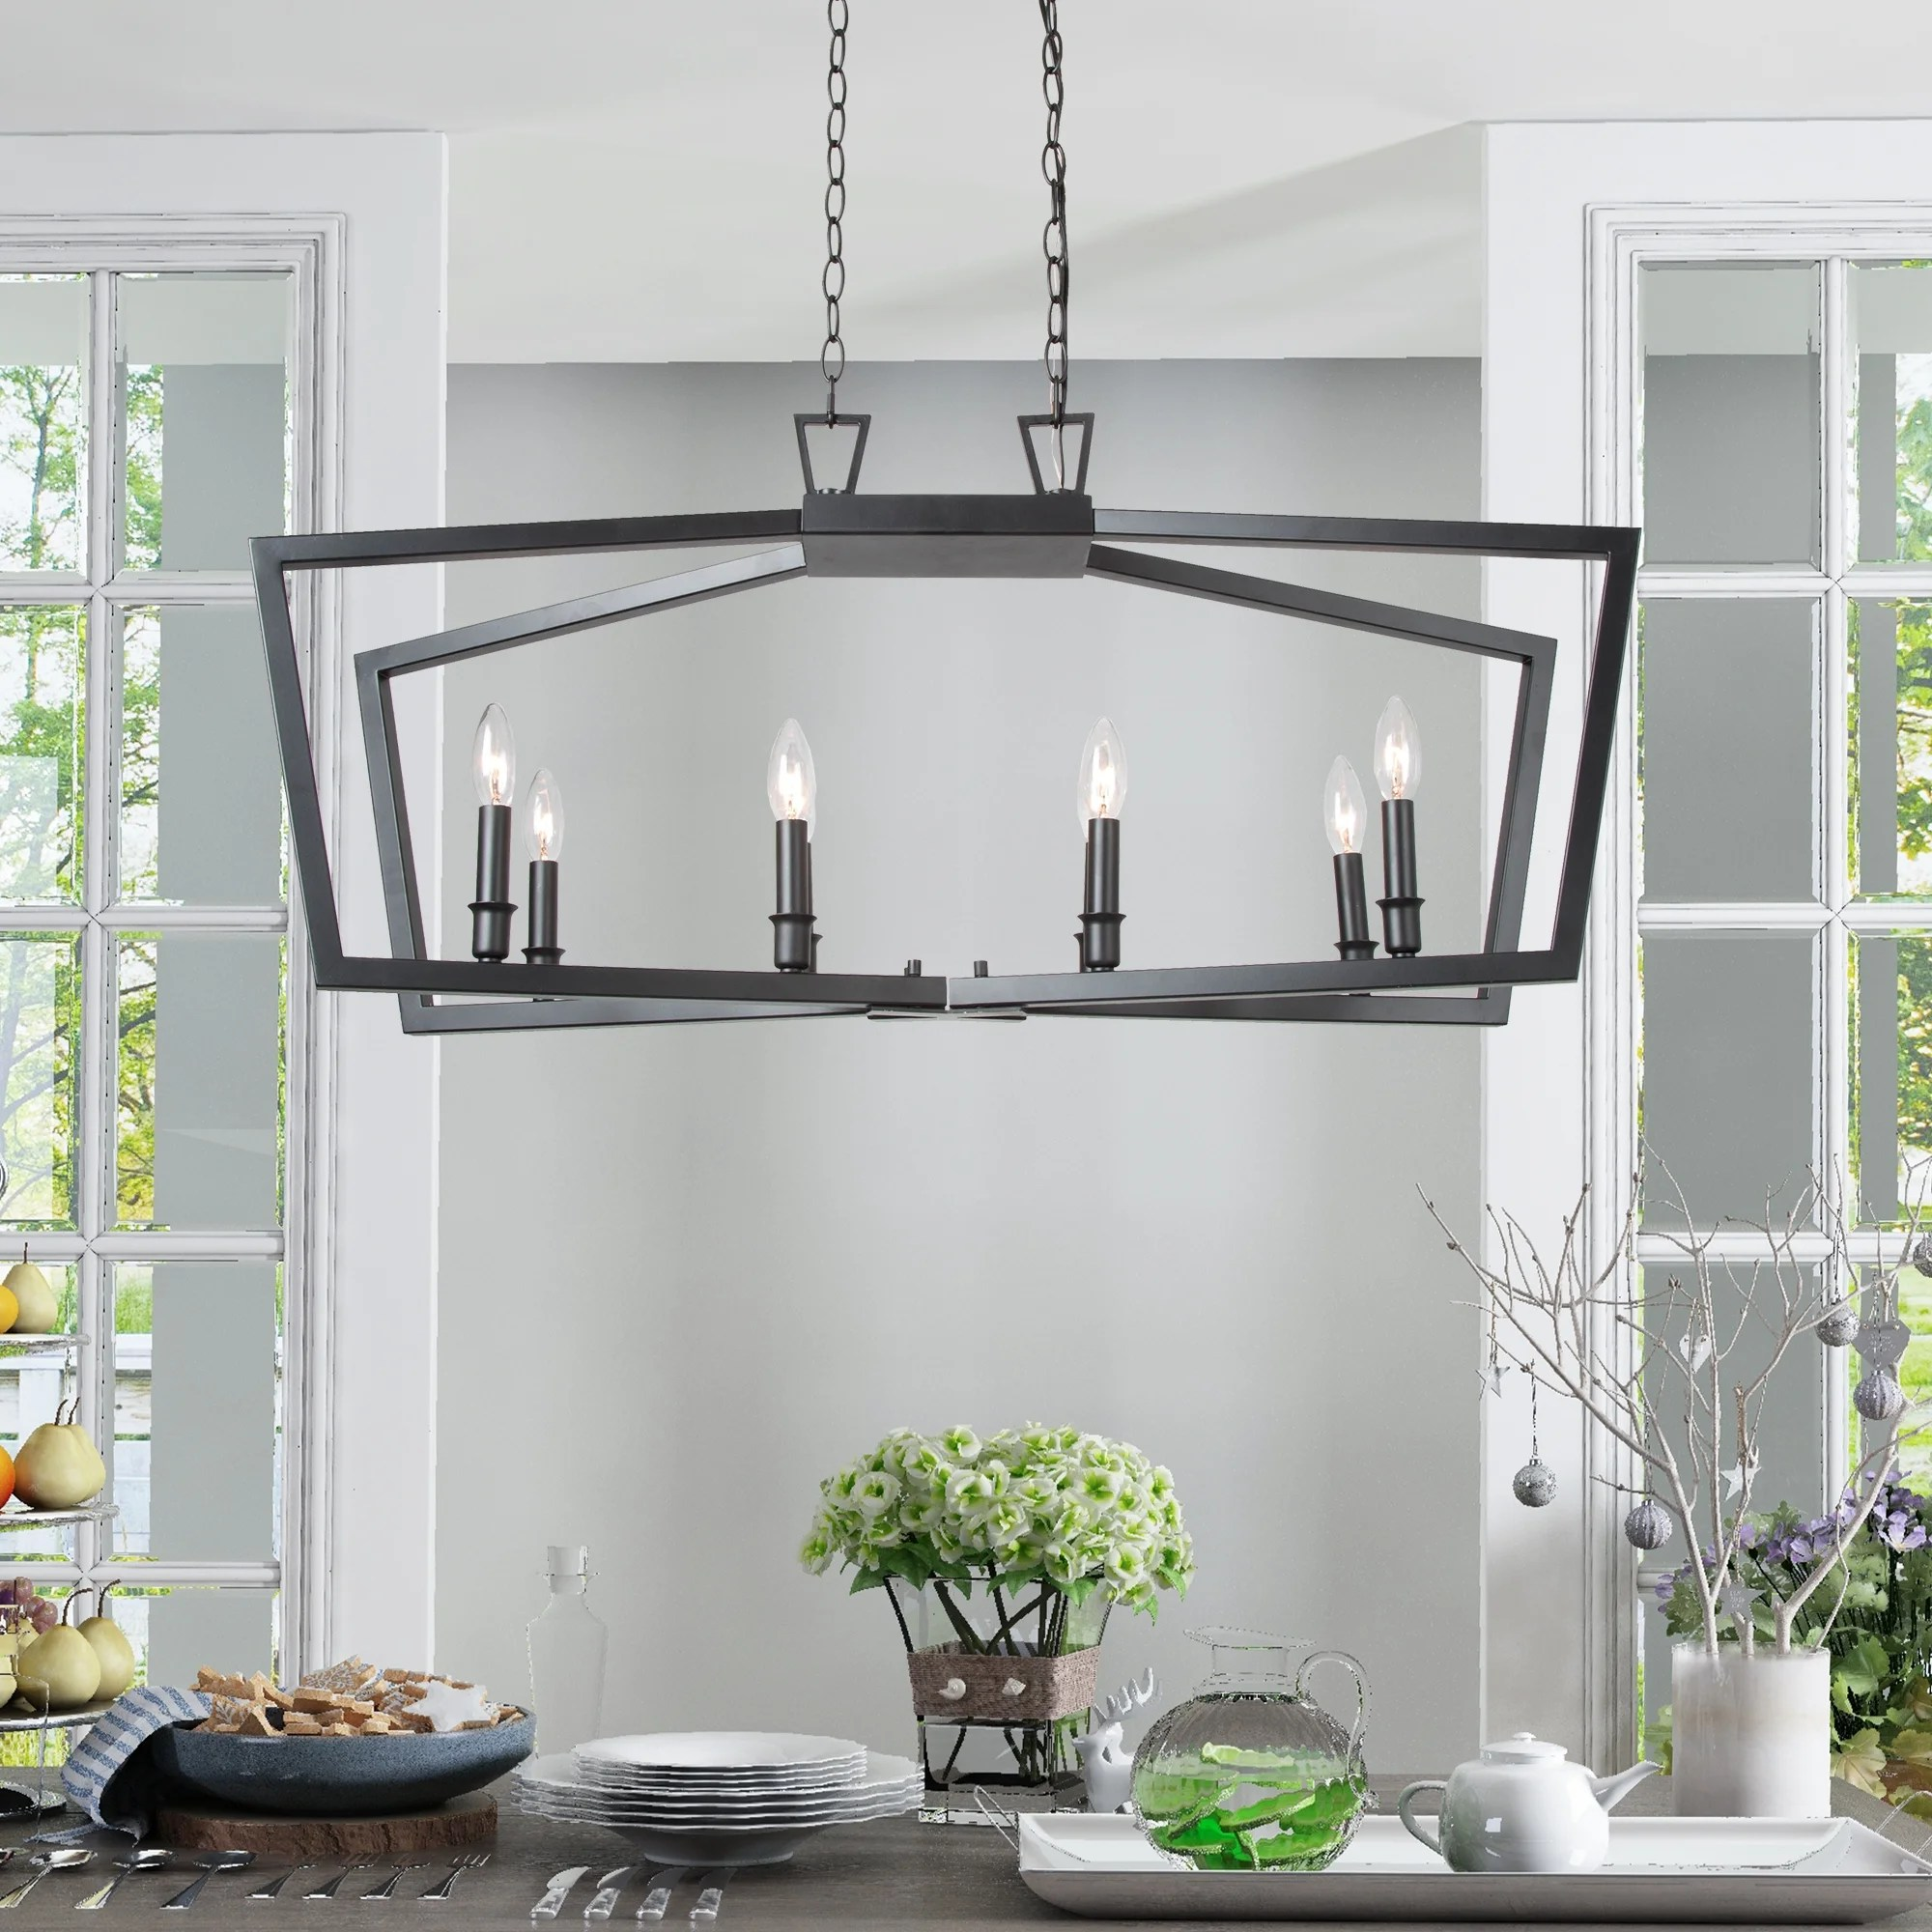 modern statement island chandeliers 8 lights black candle pendant lighting fixture for kitchen l37 xw13 xh17